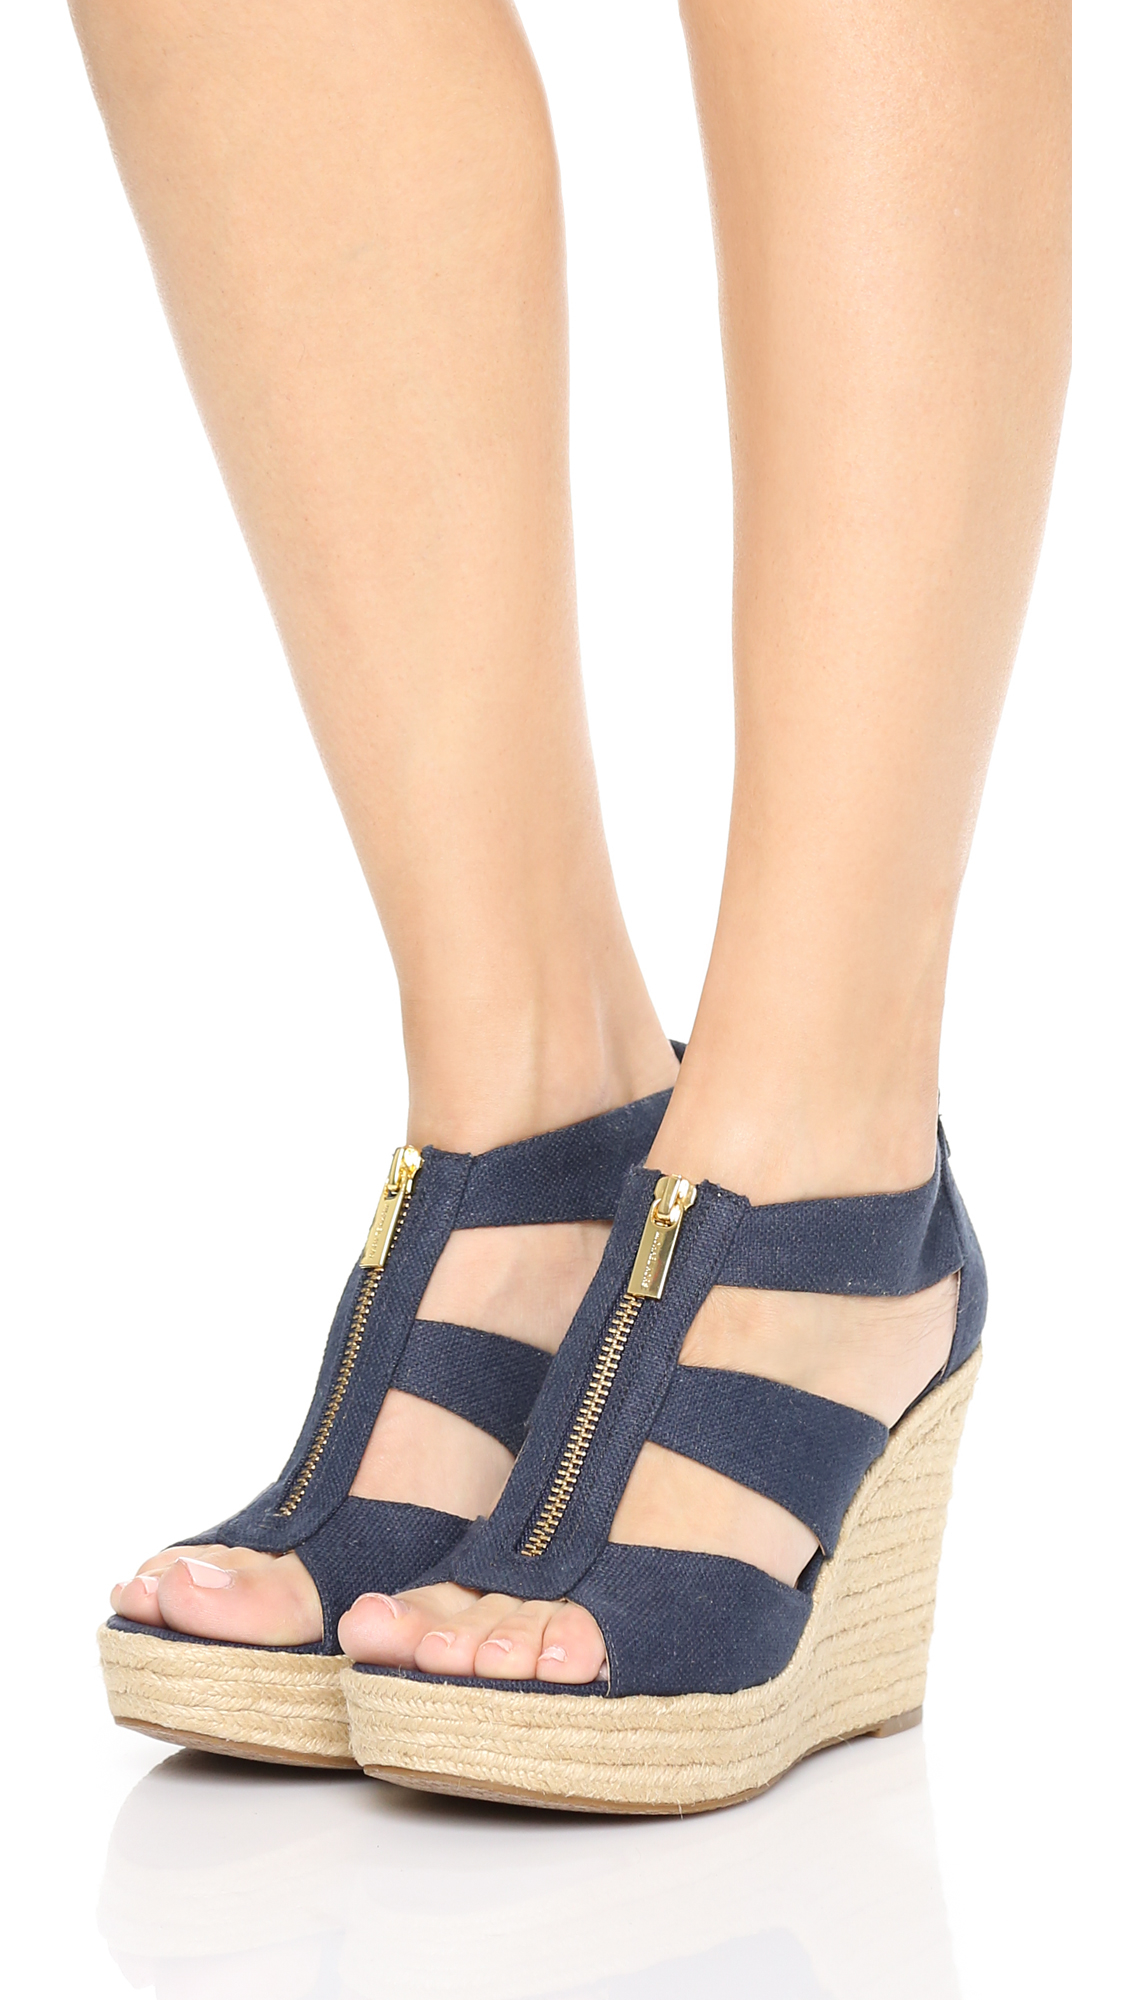 ec57ee0385d8 MICHAEL Michael Kors Damita Wedge Sandals in Blue - Lyst